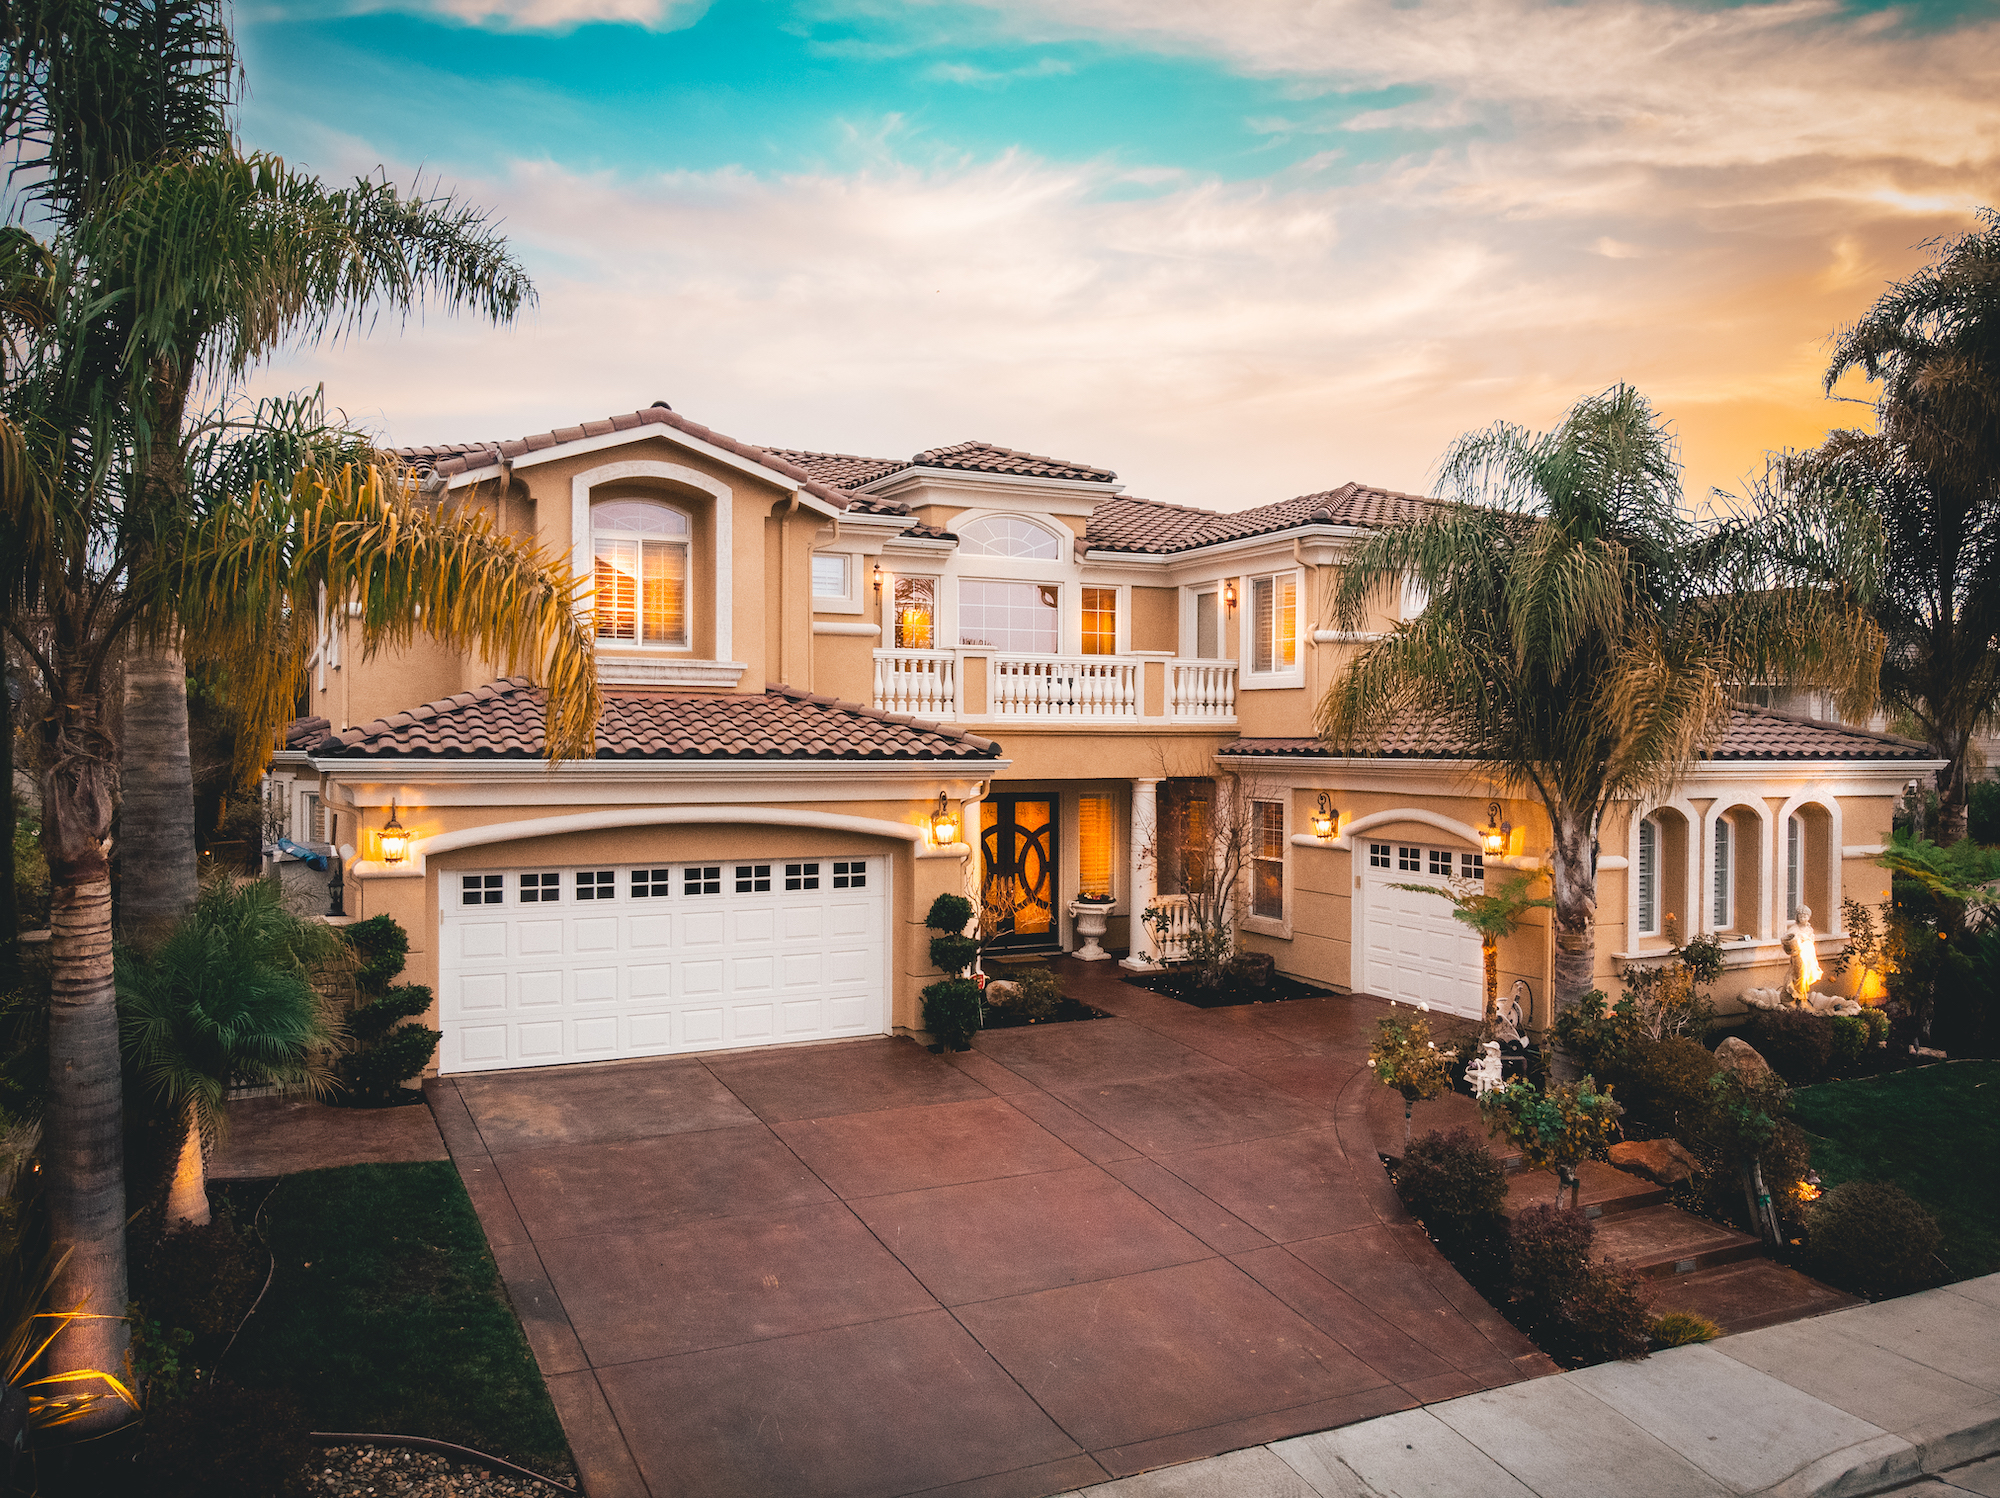 Built by Toll Brothers, this coveted San Marino floorplan is located in the desirable gated community of Pinnacle at Dublin Ranch